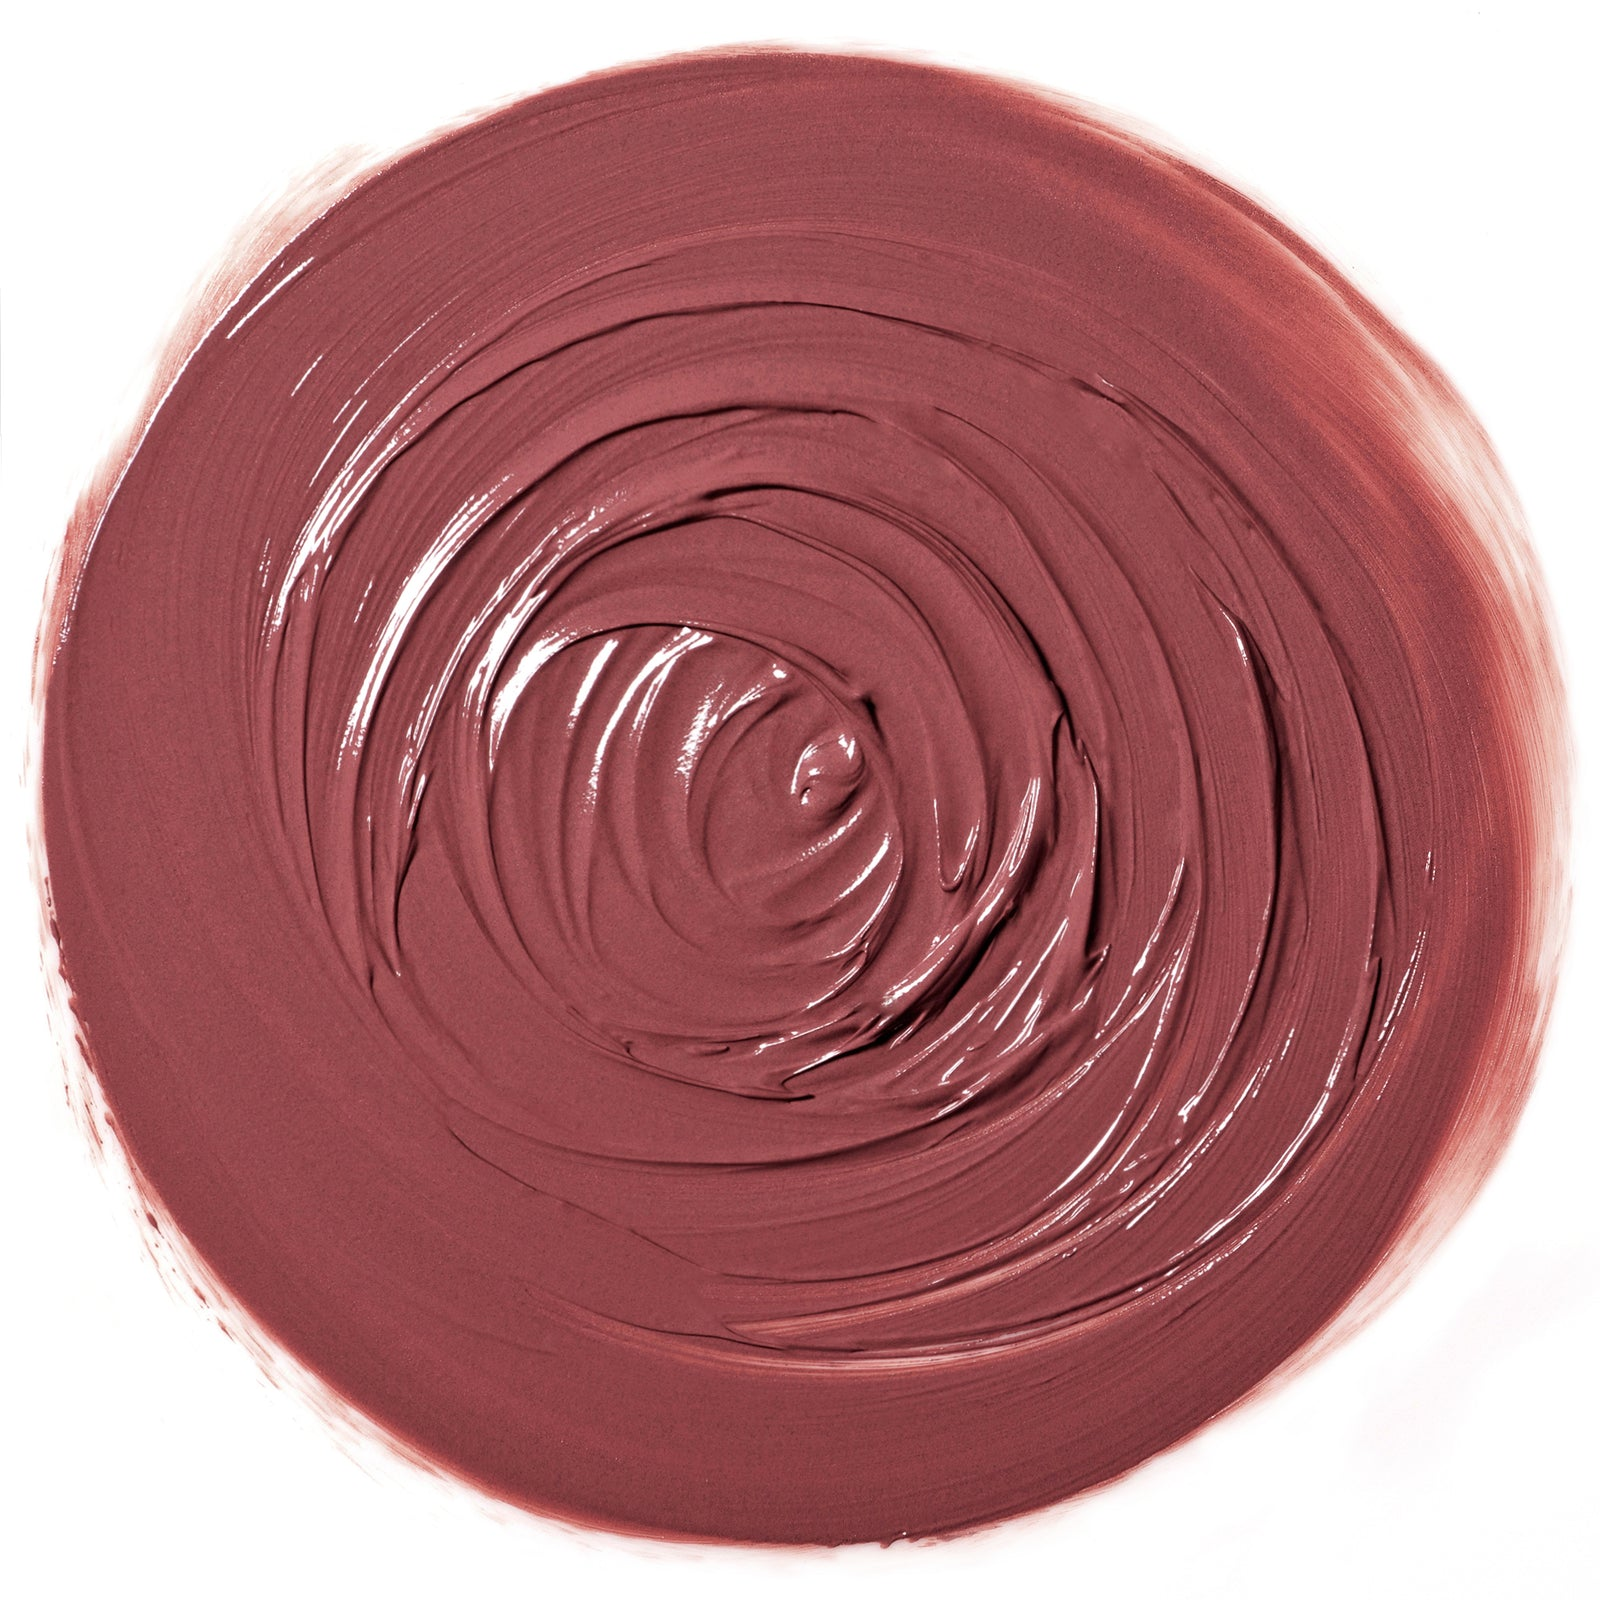 Carnal Forbidden Lipstick swatch